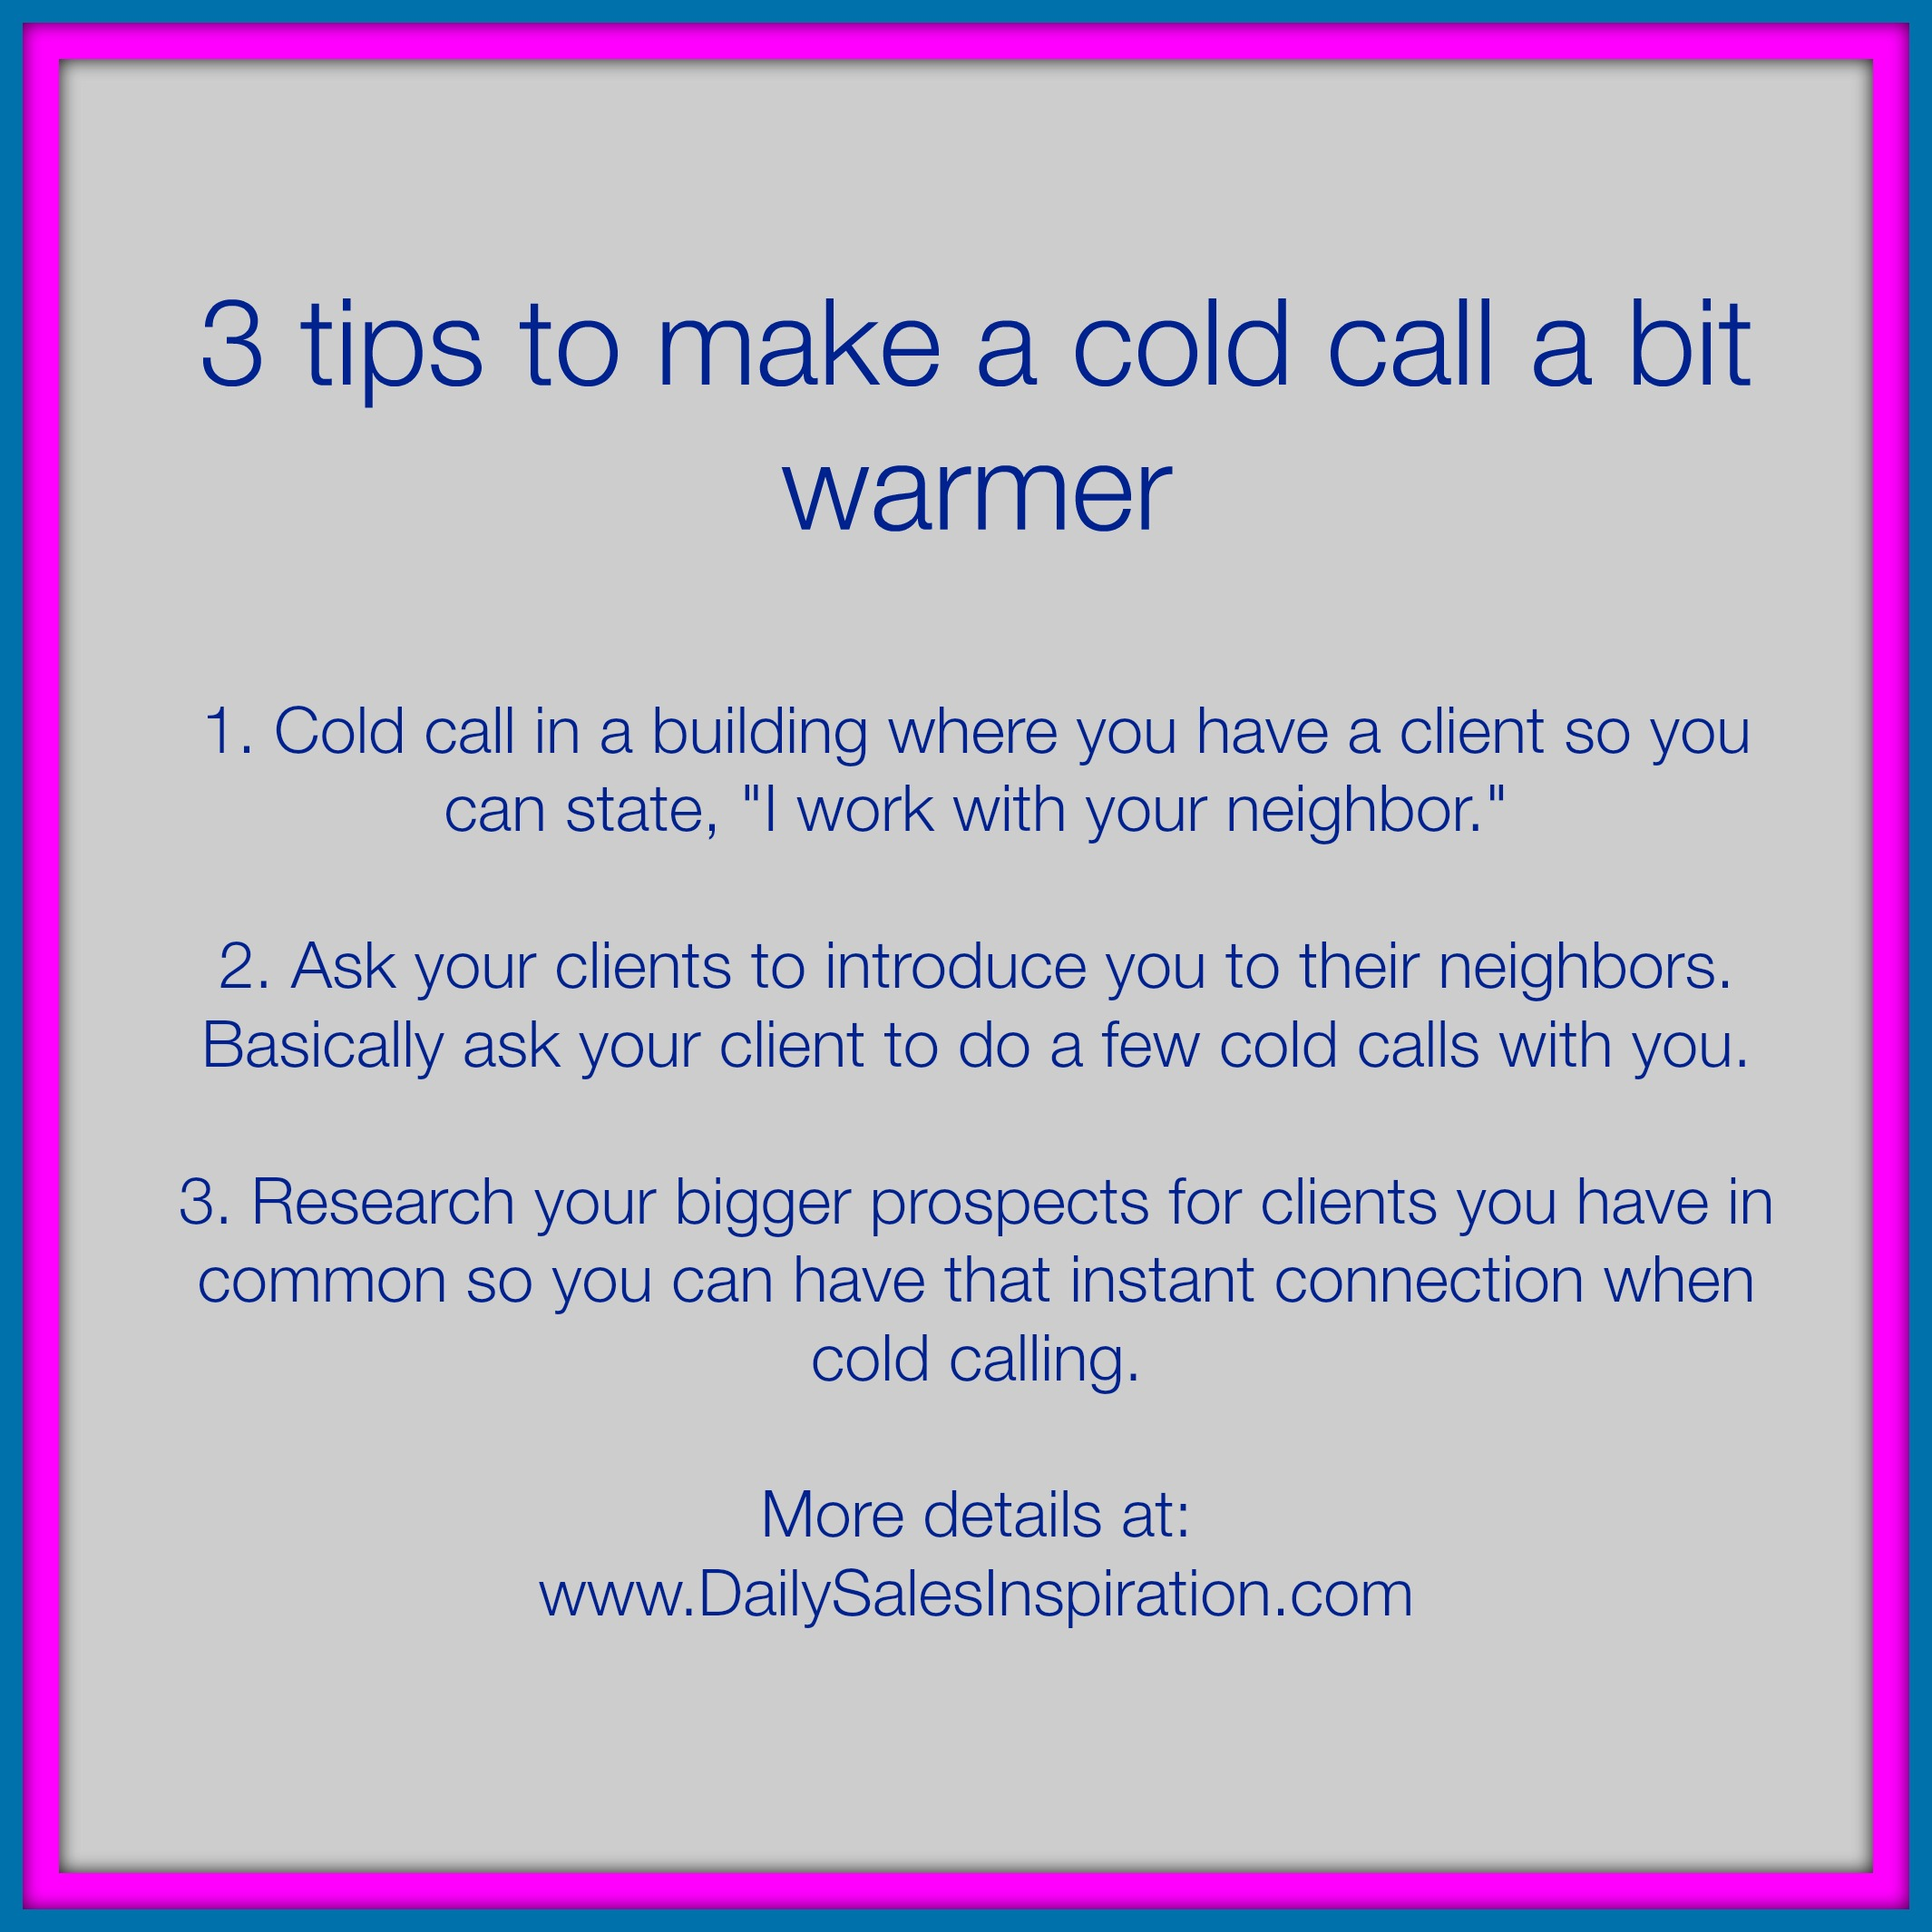 3 tips on how to make a cold call warmer | Daily Sales Inspiration